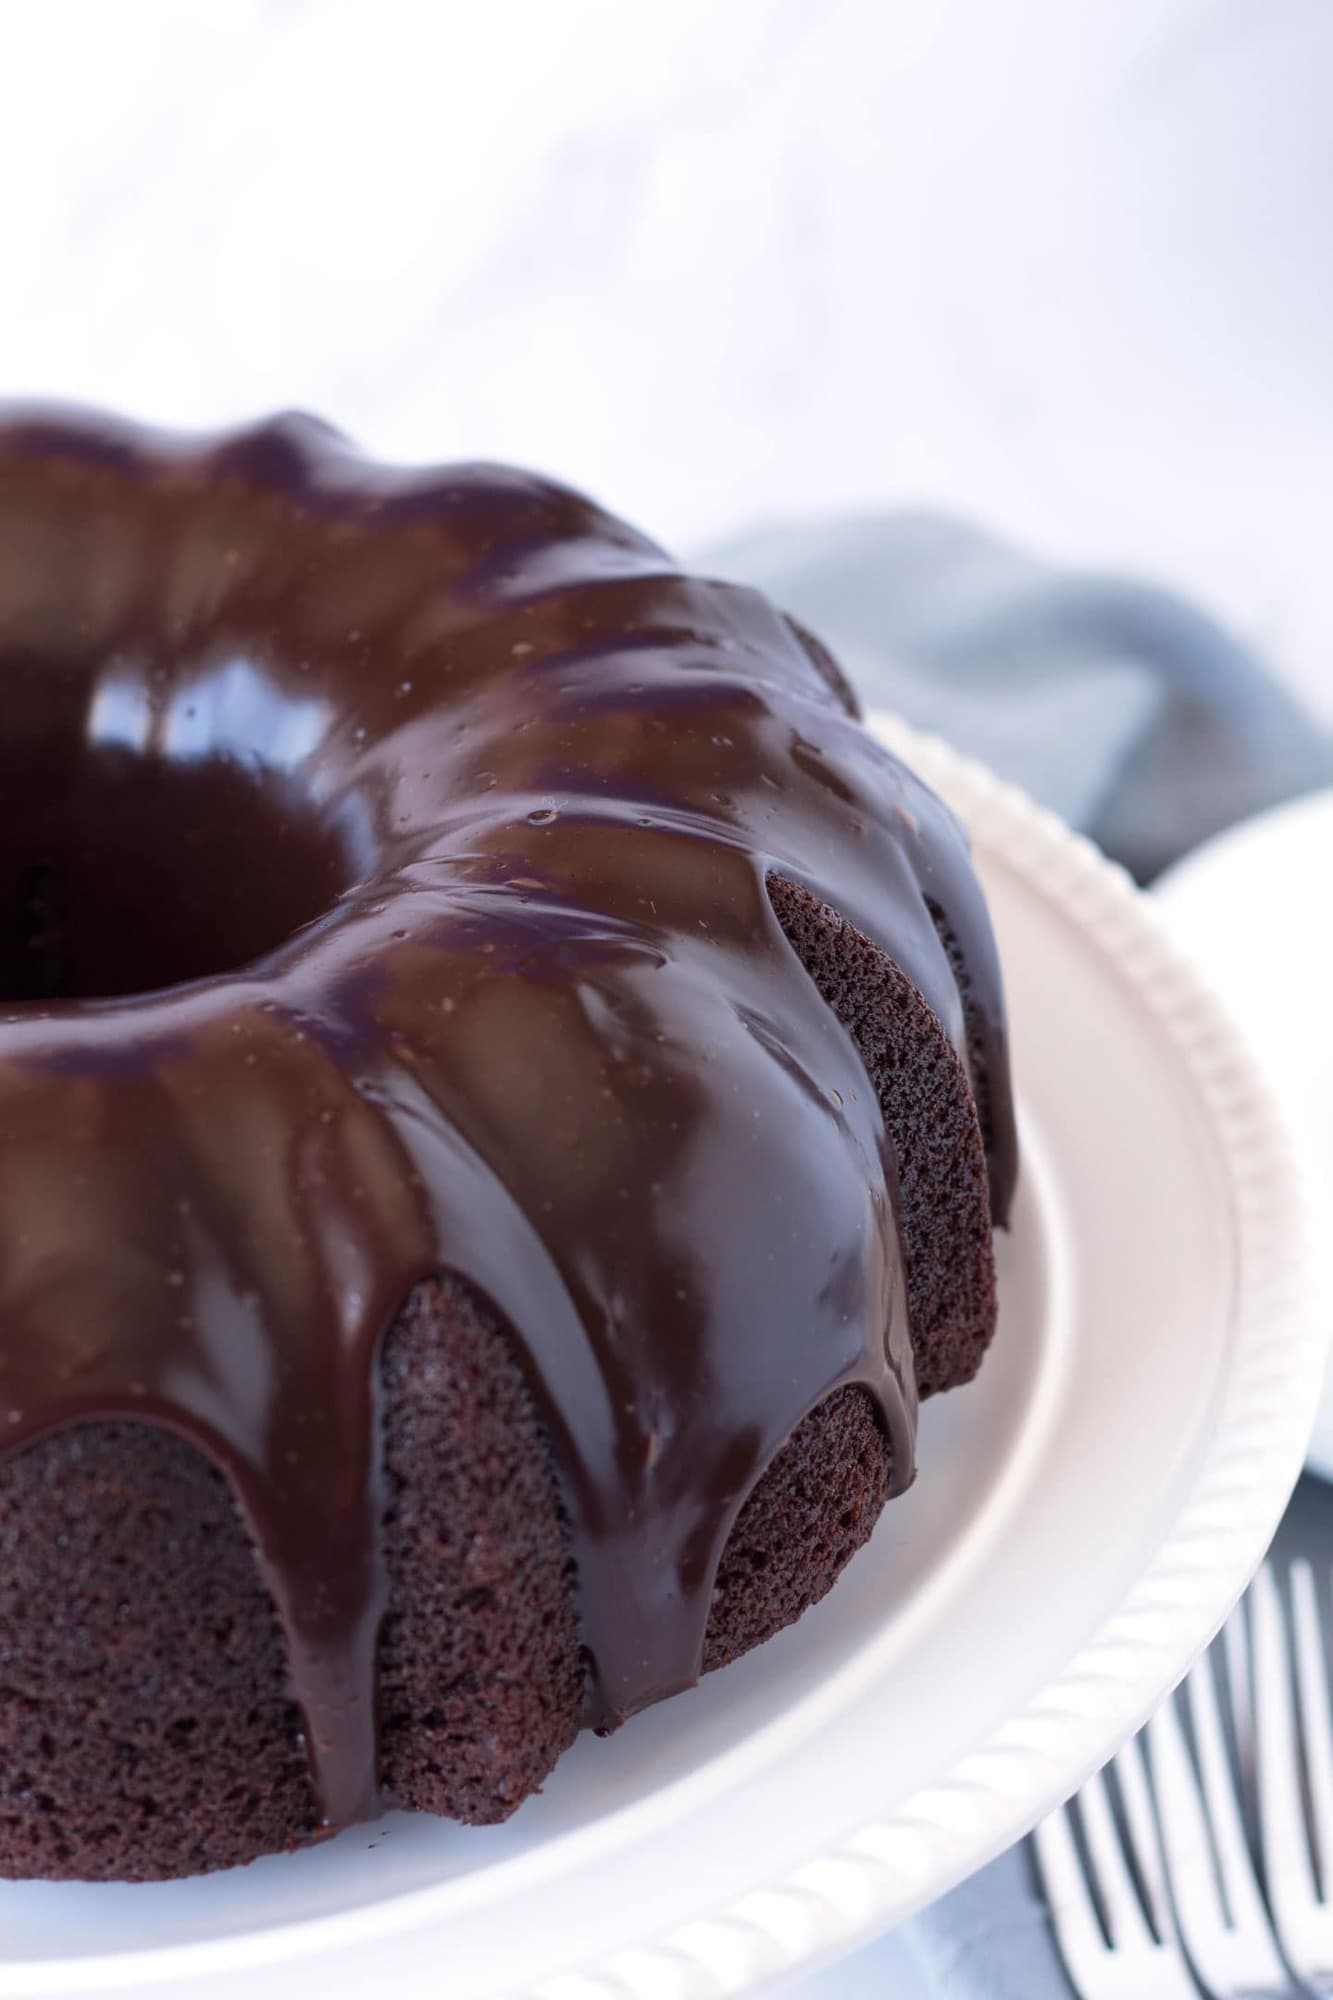 The perfect chocolate bundt cake on a cake plate with plates and forks